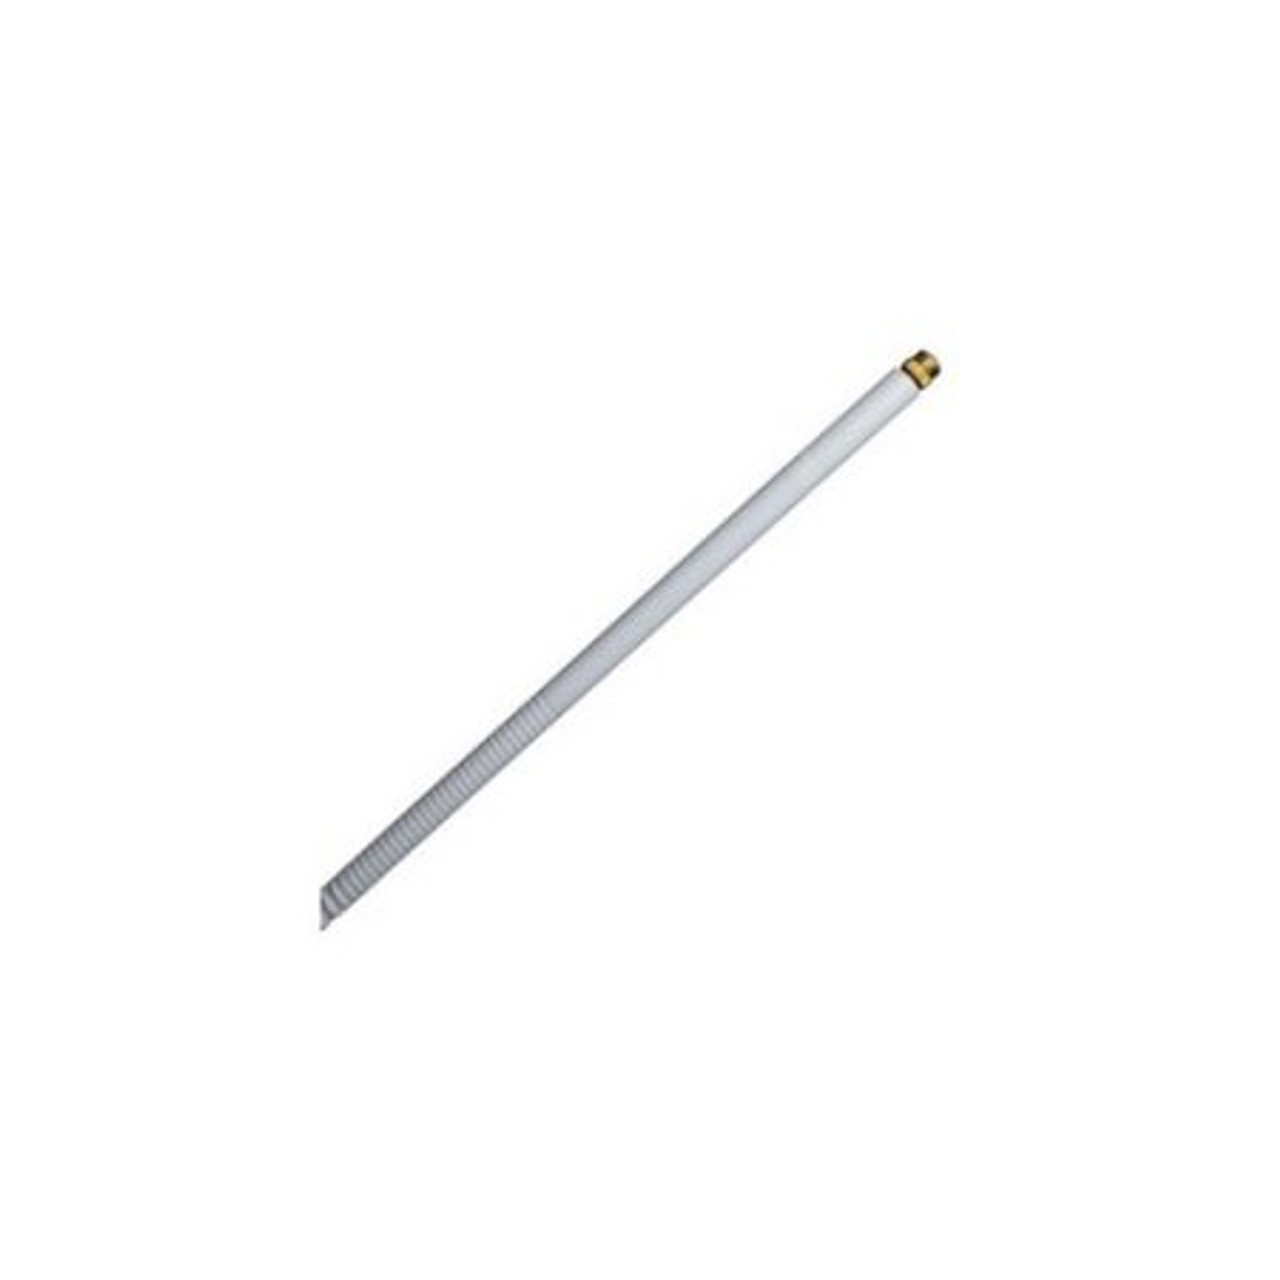 2 Foot Firestik II FS Series Tunable Tip CB Antenna - White